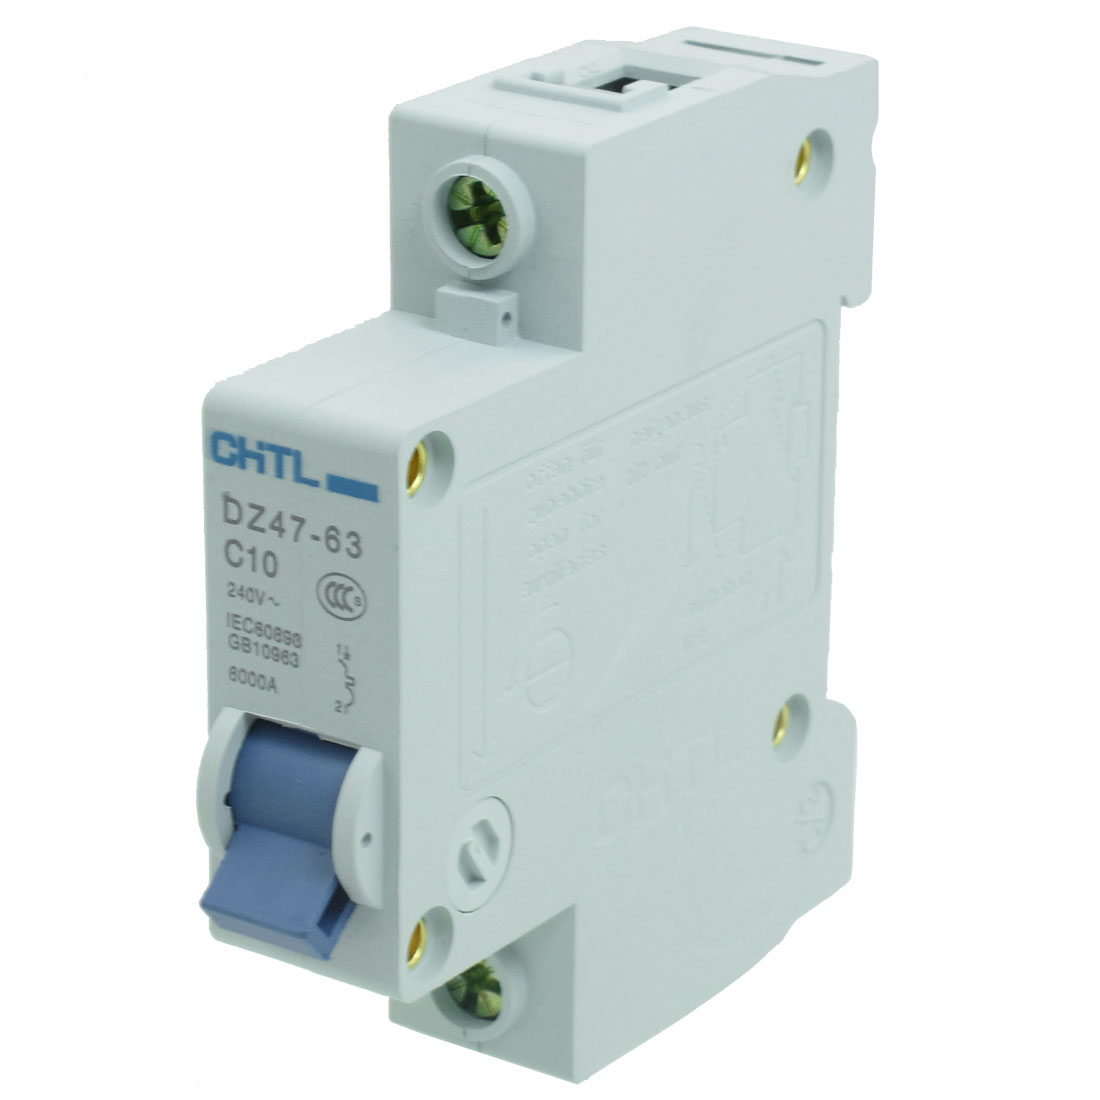 AC 240V Rated Current 10A Single Pole Miniature Circuit Breaker